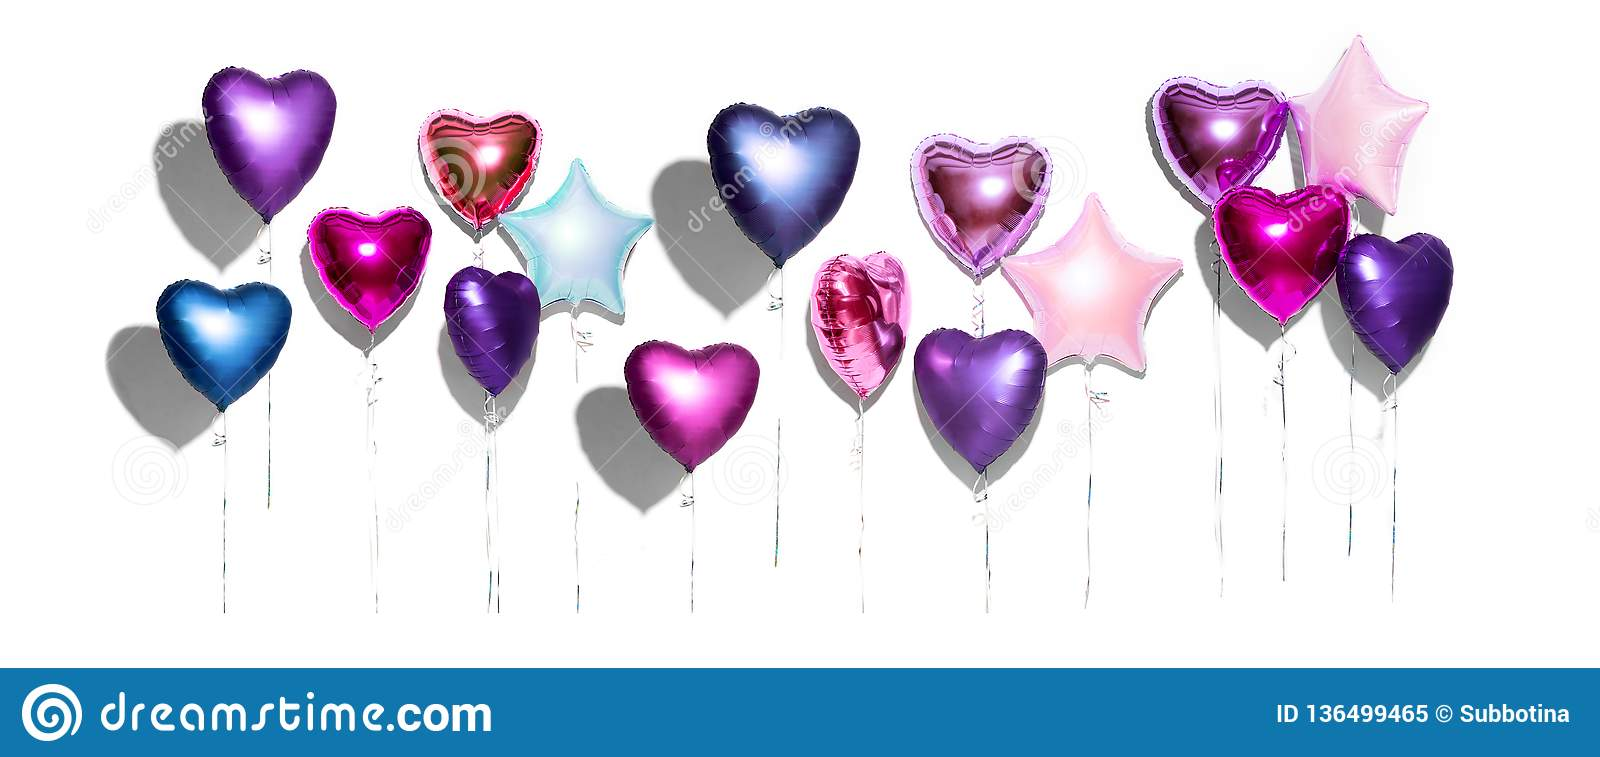 Air balloons. Bunch of purple heart shaped foil balloons, isolated on white background. Valentine`s day